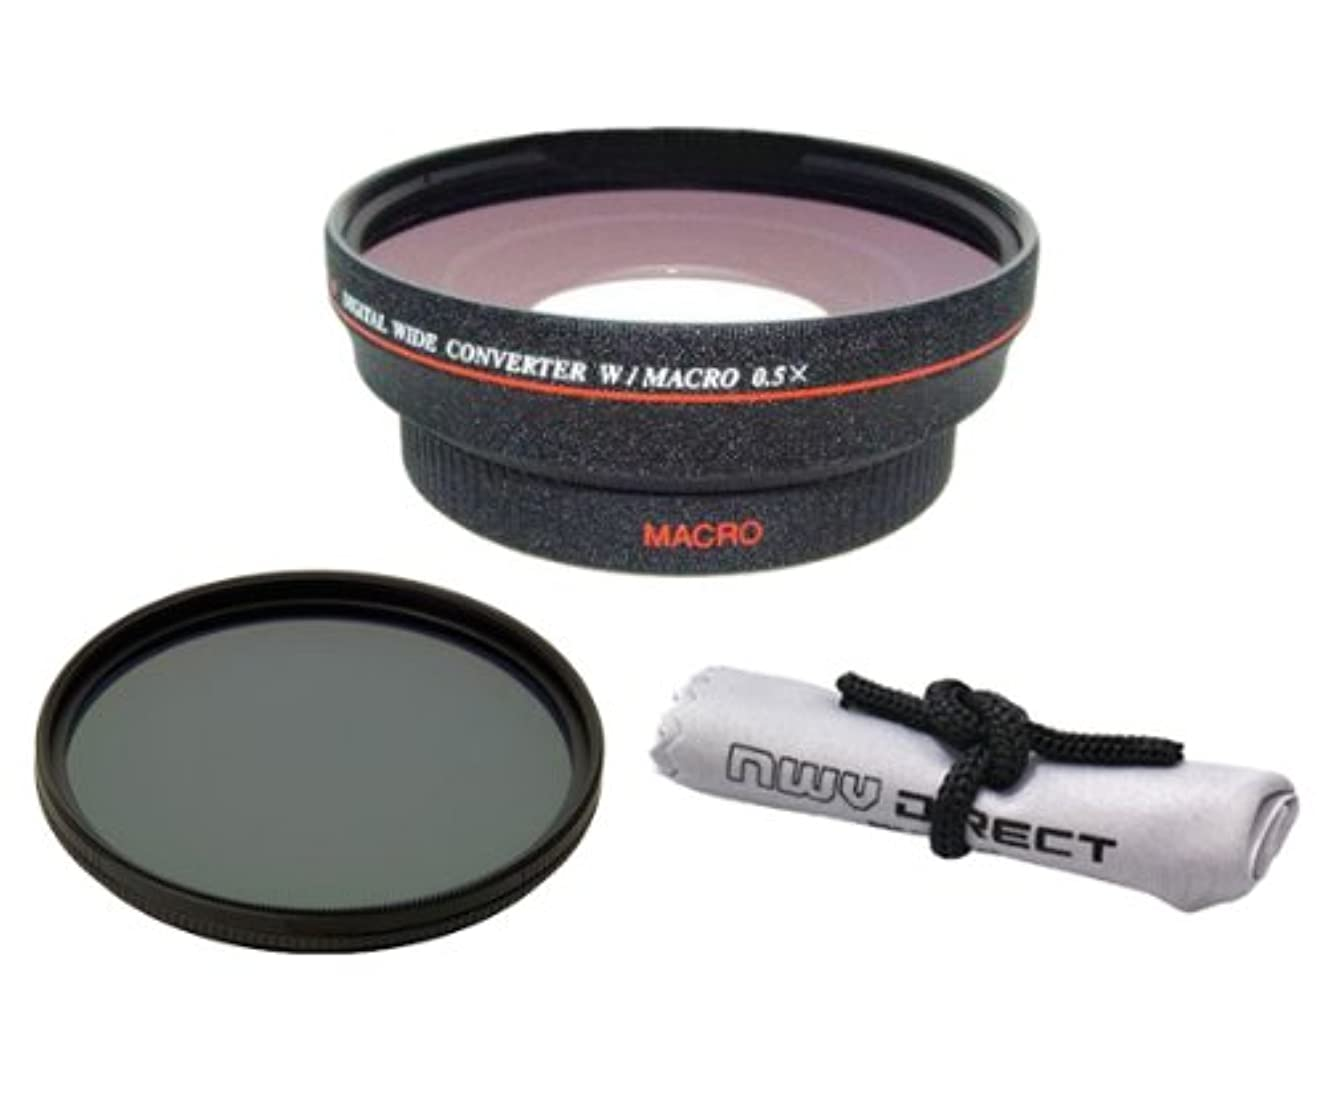 58mm 0.5x Super Wide Angle Lens With Macro (Wider Alternative To Panasonic DMW-LWA52) + Stepping Ring (52-58mm) + 82mm Circular Polarizing Filter + Nwv Direct Micro Fiber Cleaning Cloth